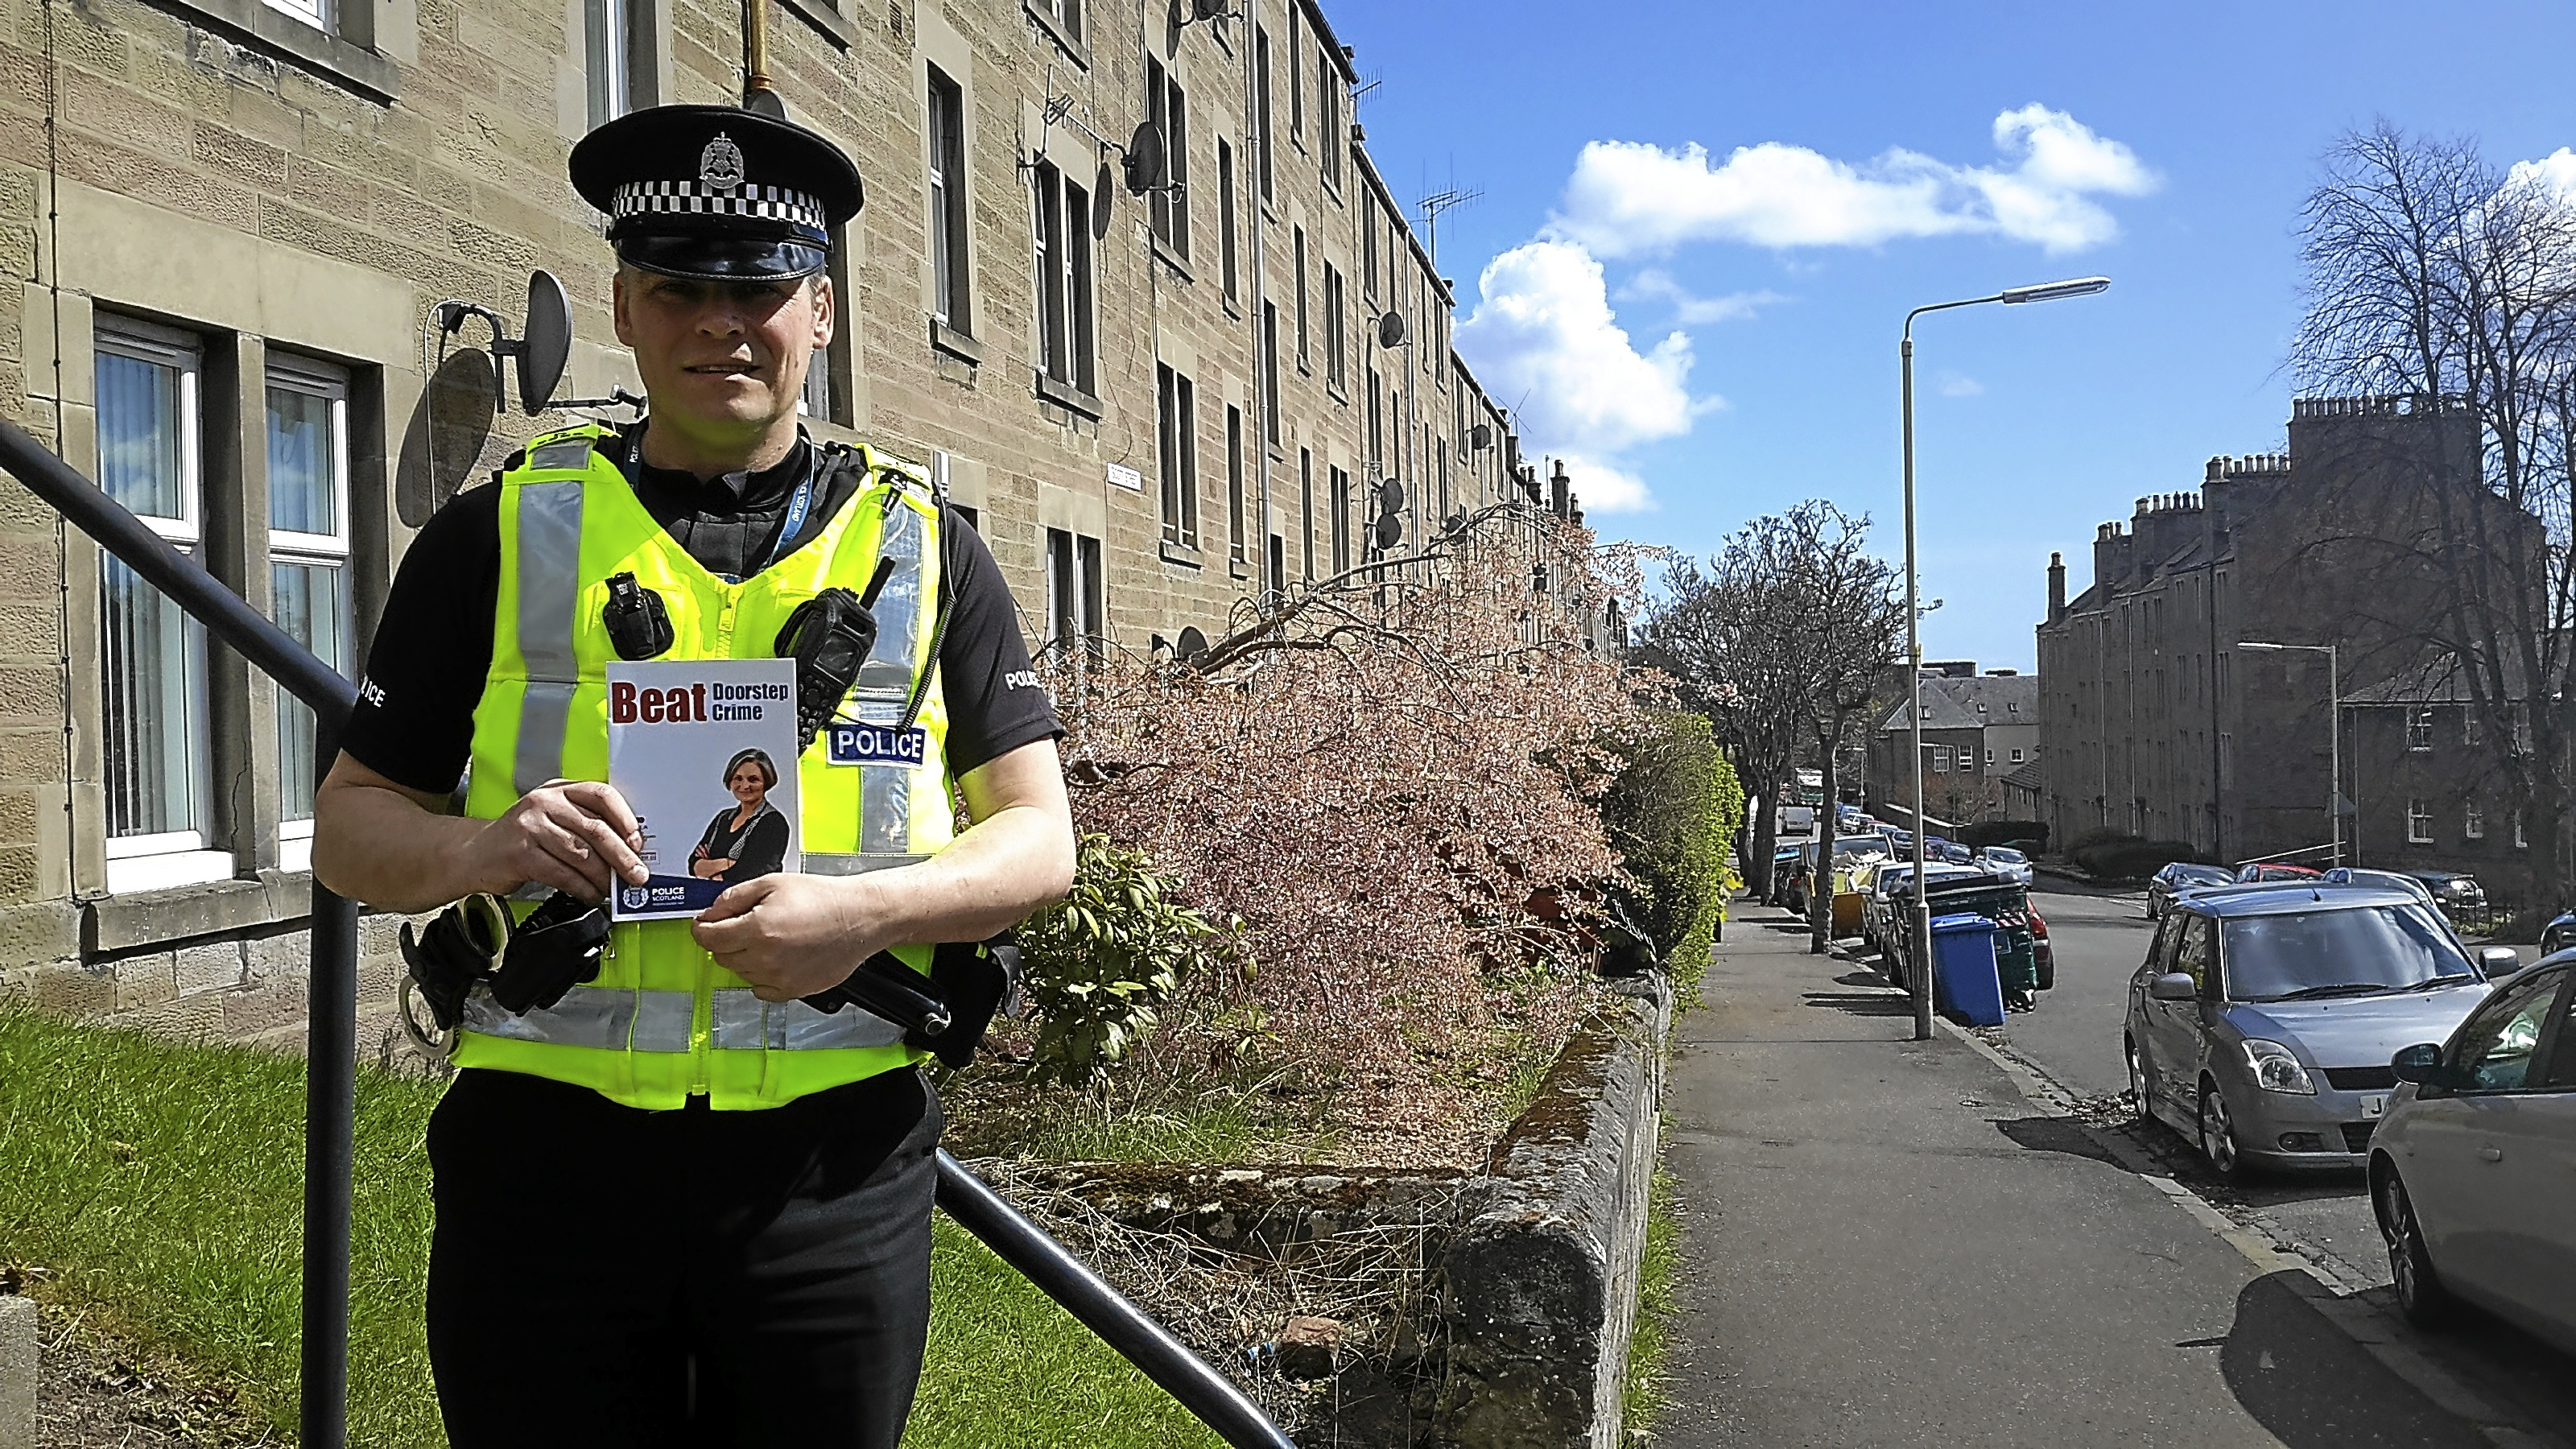 Officers have been raising awareness